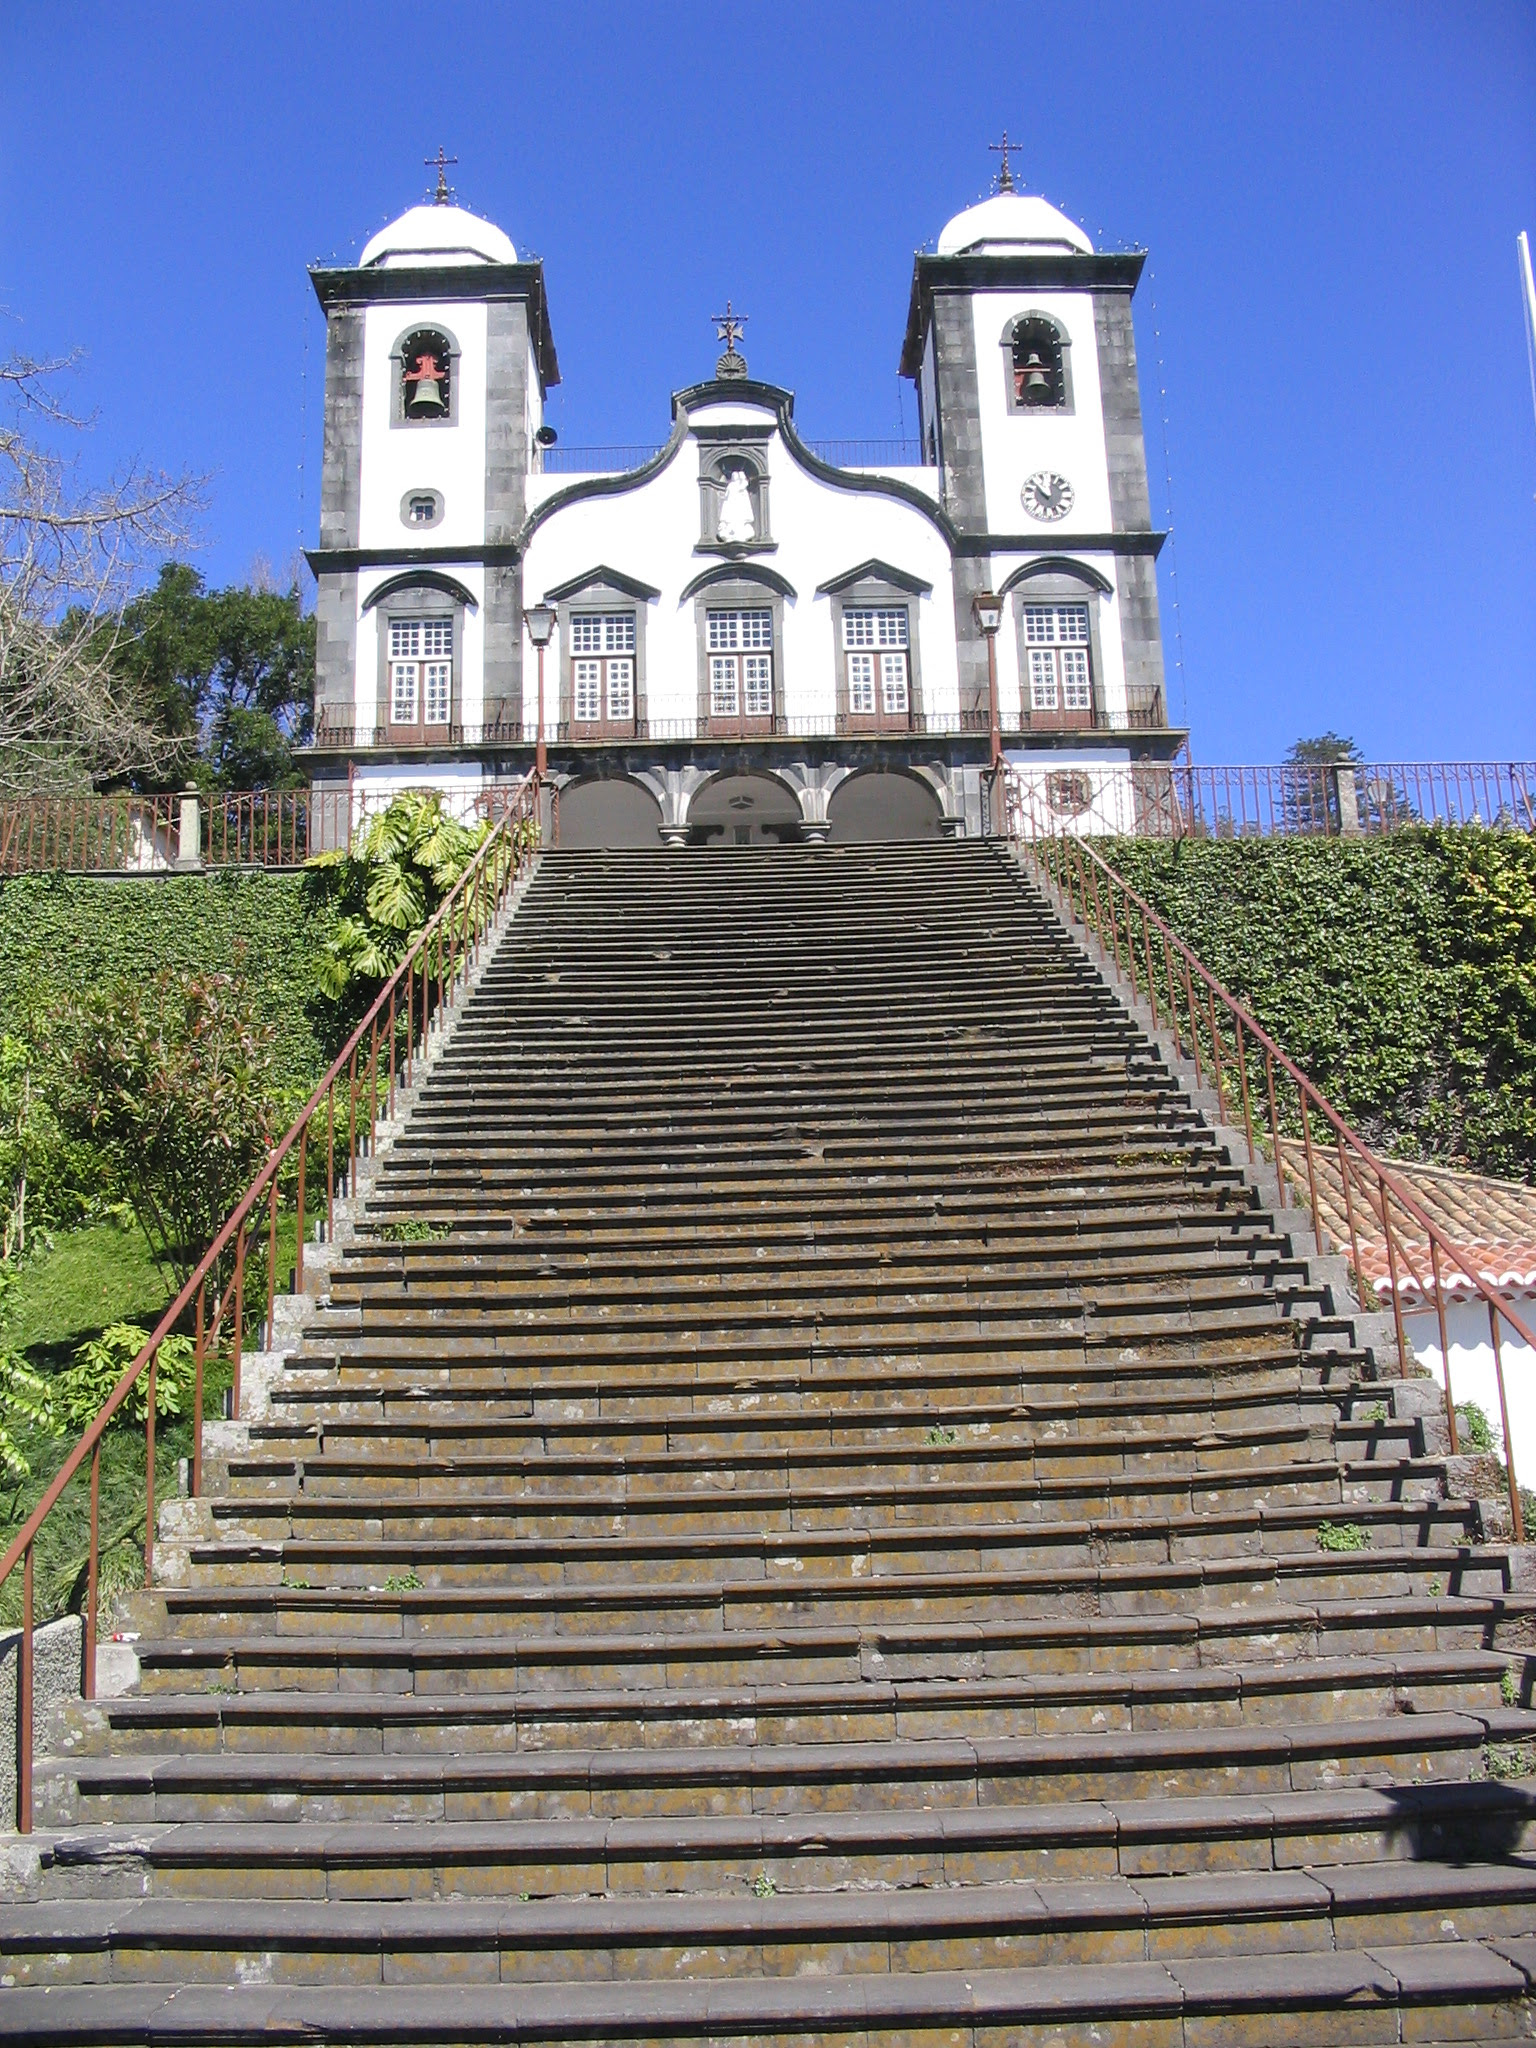 The church of the tomb of Blessed Charles in Monte, Madeira